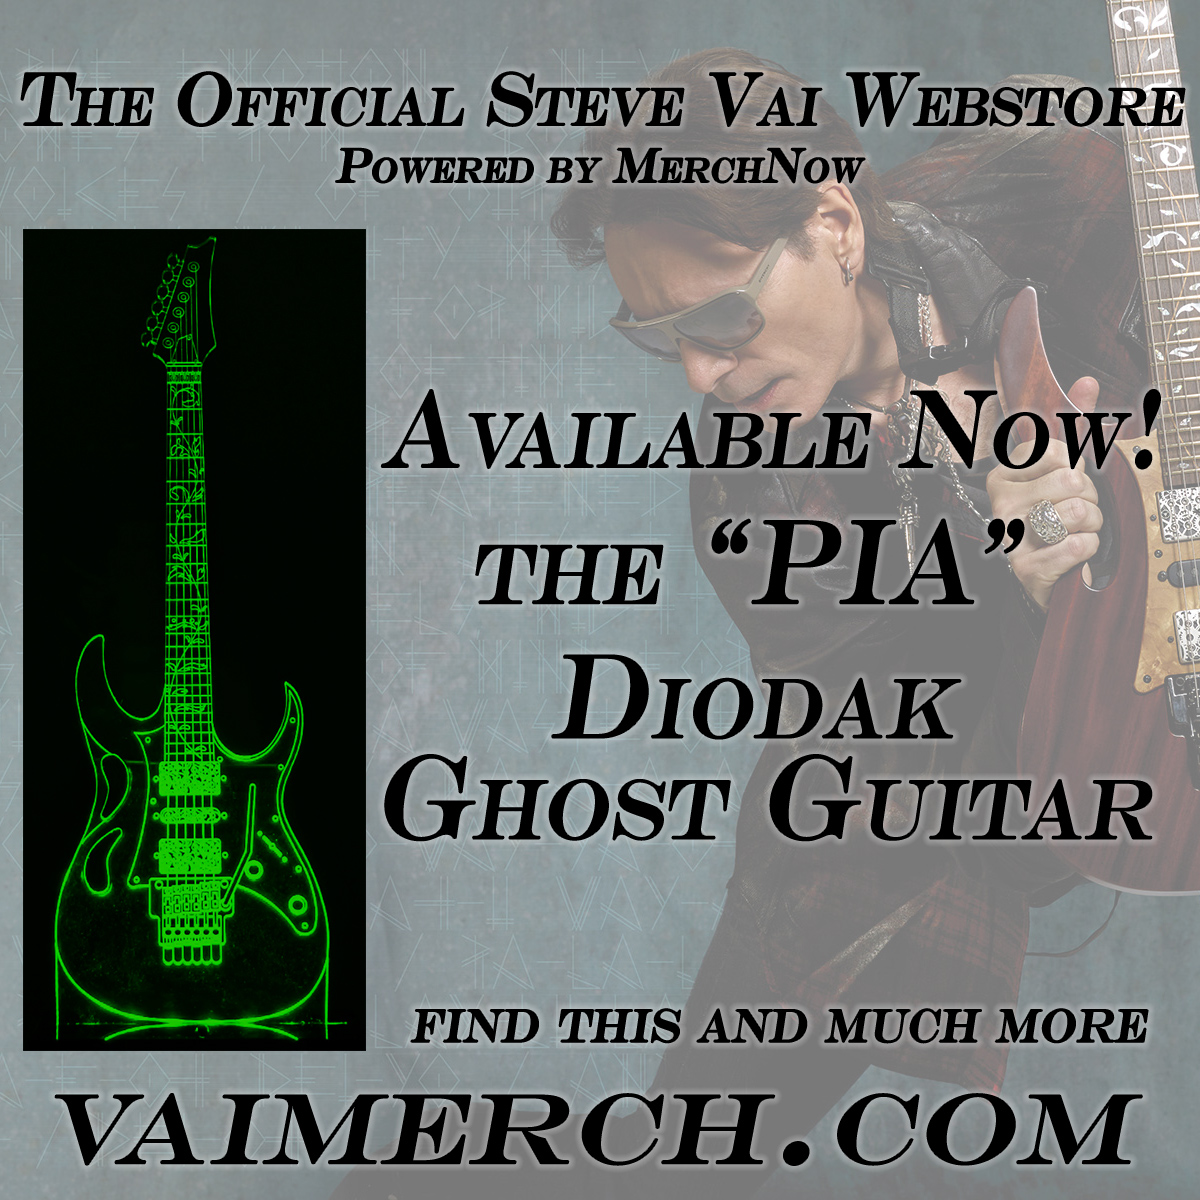 Hey folks, my new webstore is now up and running at https://t.co/hDdP2tLyqL! It has signed vinyl, my signature @DiMarzioInc guitar gear, and much more. https://t.co/dRDJuc6TJm